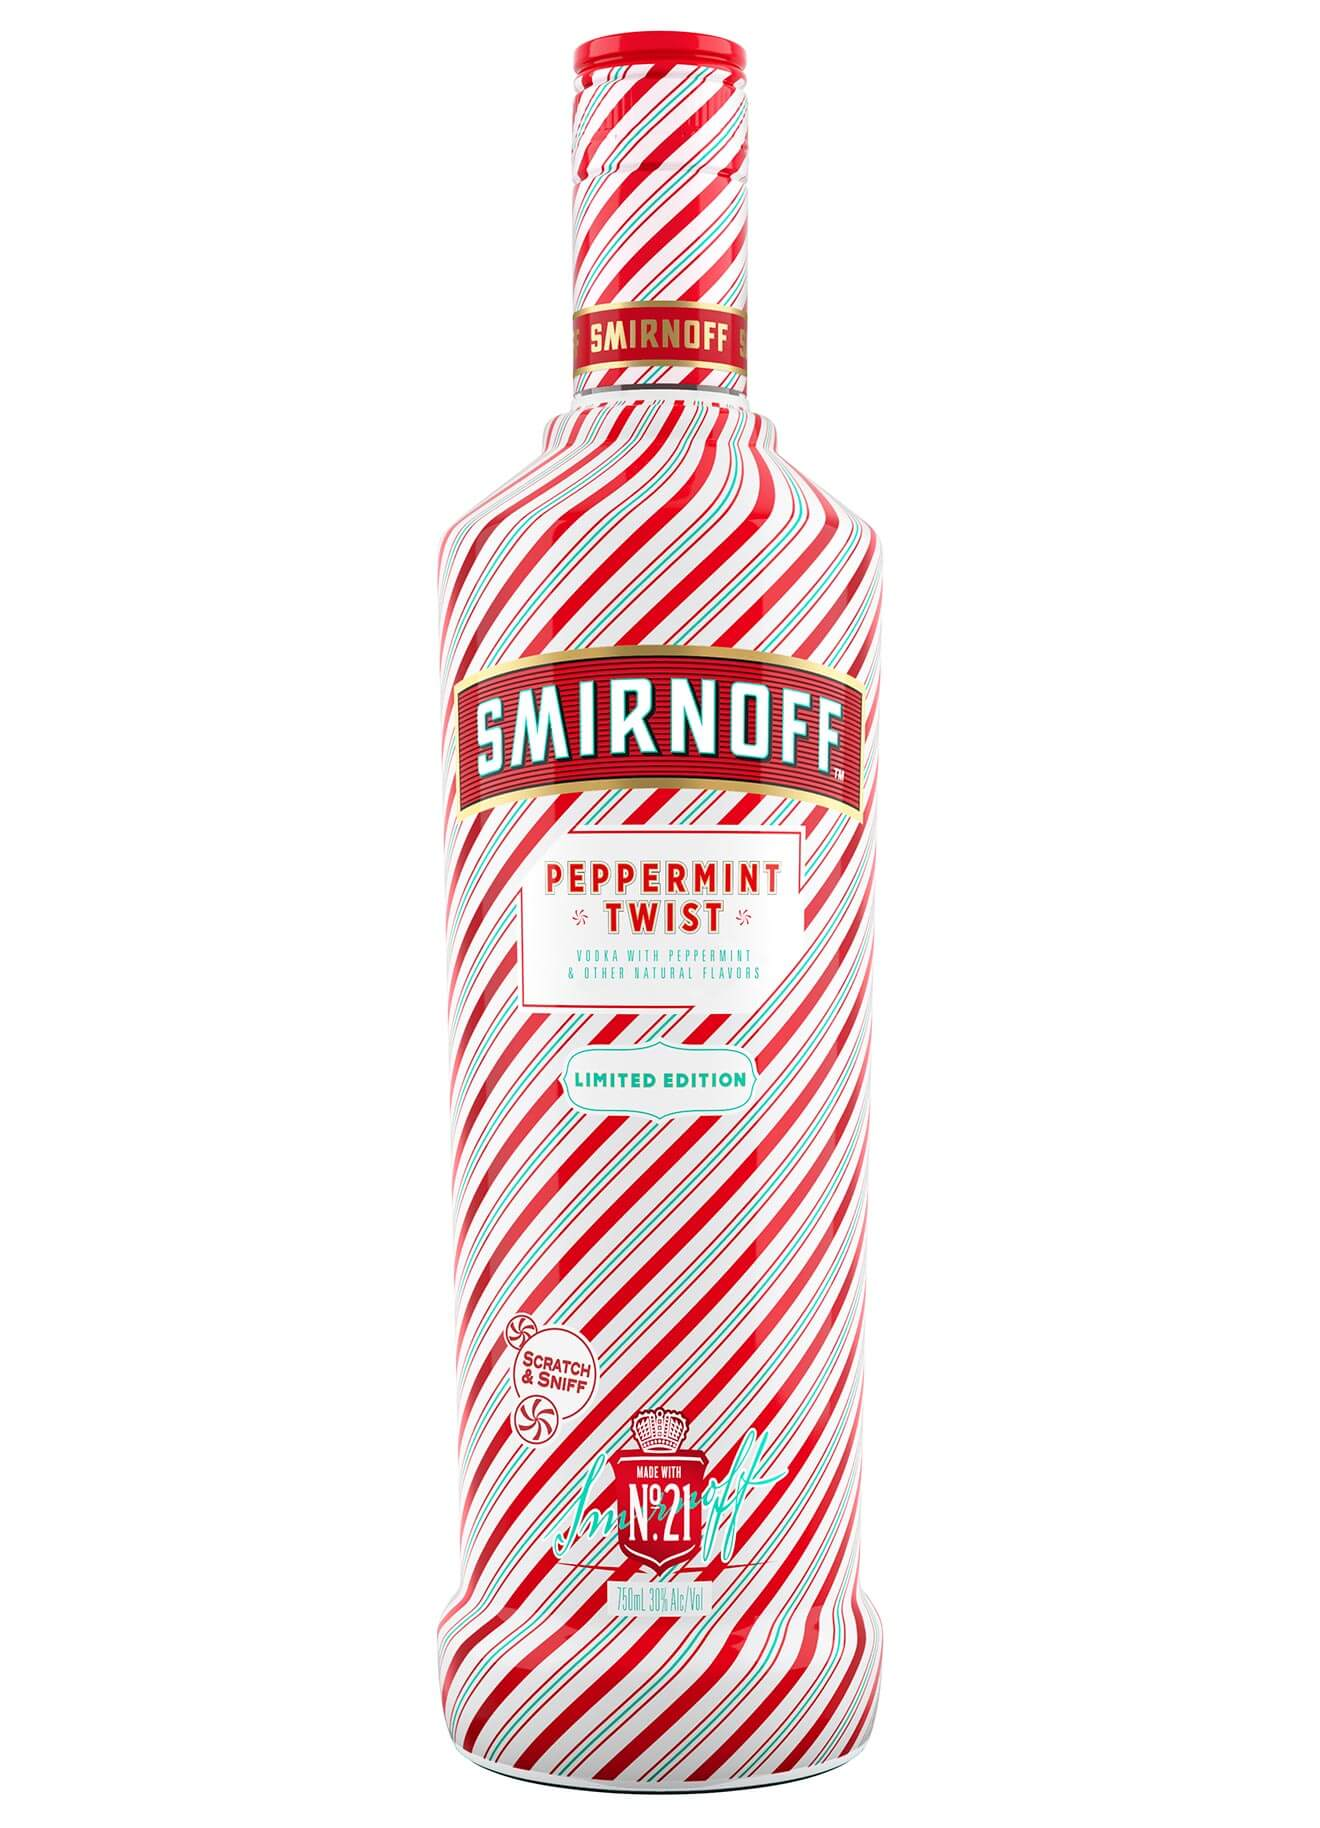 Smirnoff Peppermint Twist bottle